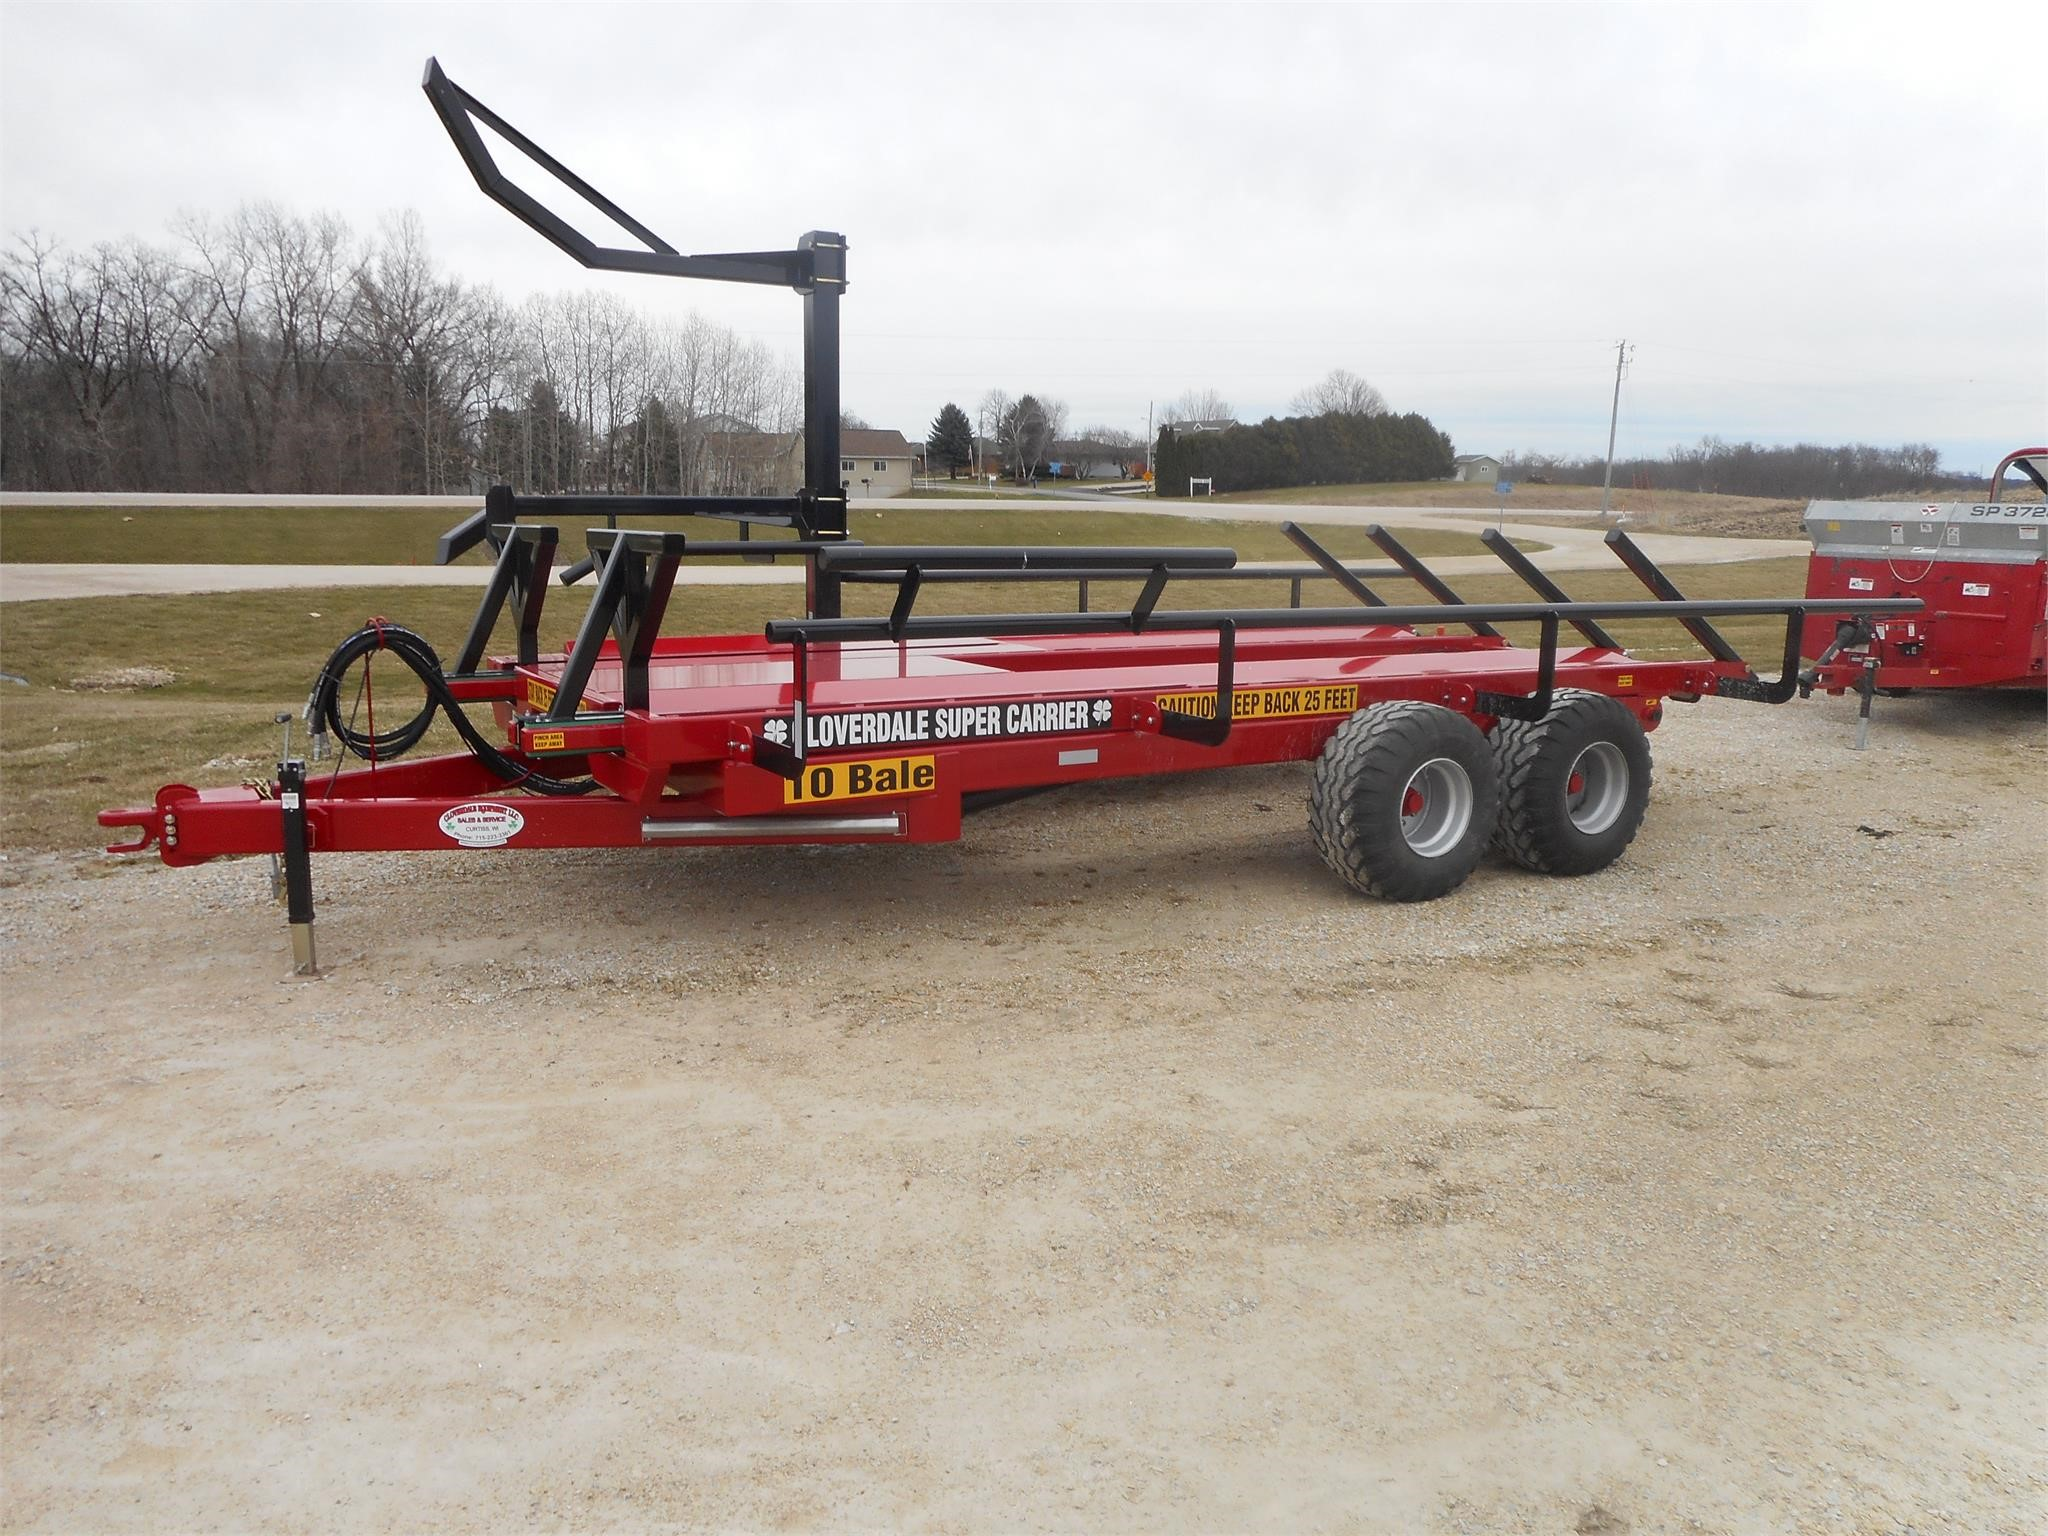 2019 Cloverdale Super Carrier 10 Bale Wagons and Trailer